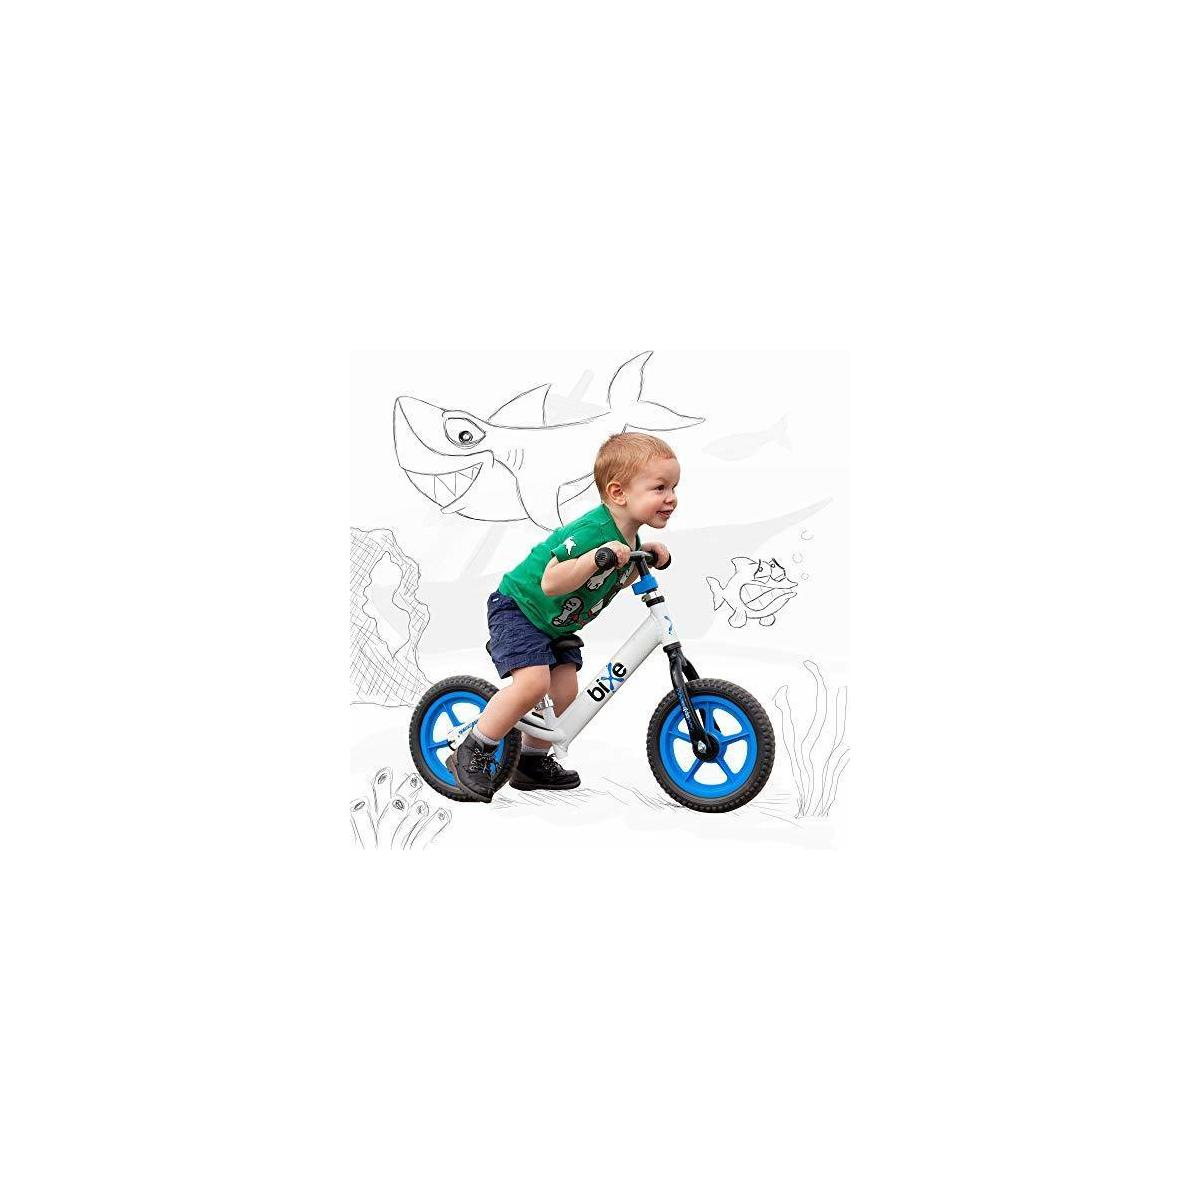 Bixe 4 lb Extreme Light Balance Bike (For Kids 2-5 Years) Applies to Blue Color